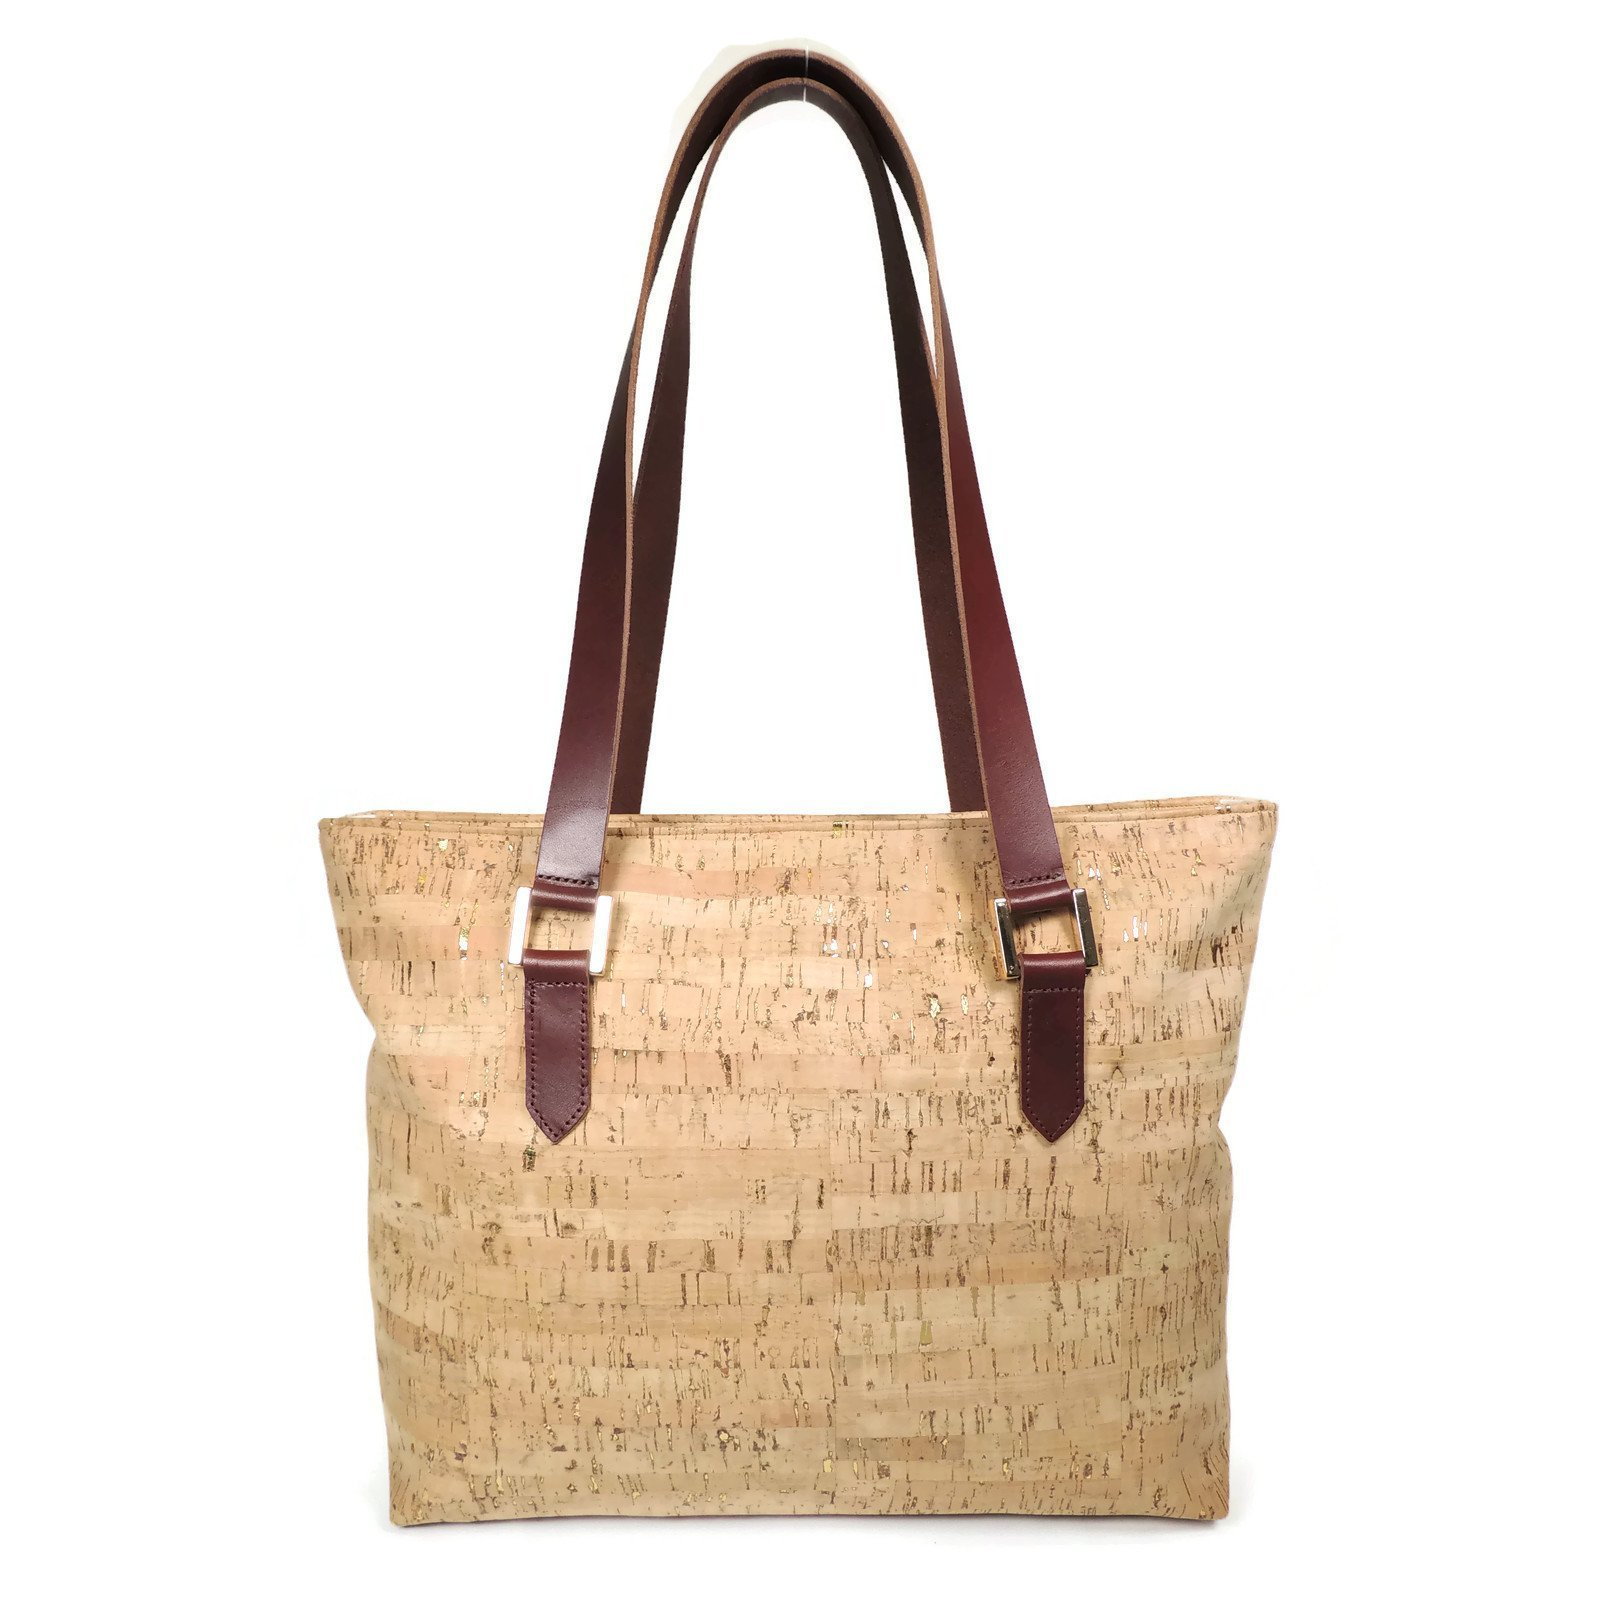 Cork Leather Zip Top Tote Purse with Gold Flecks by Spicer Bags